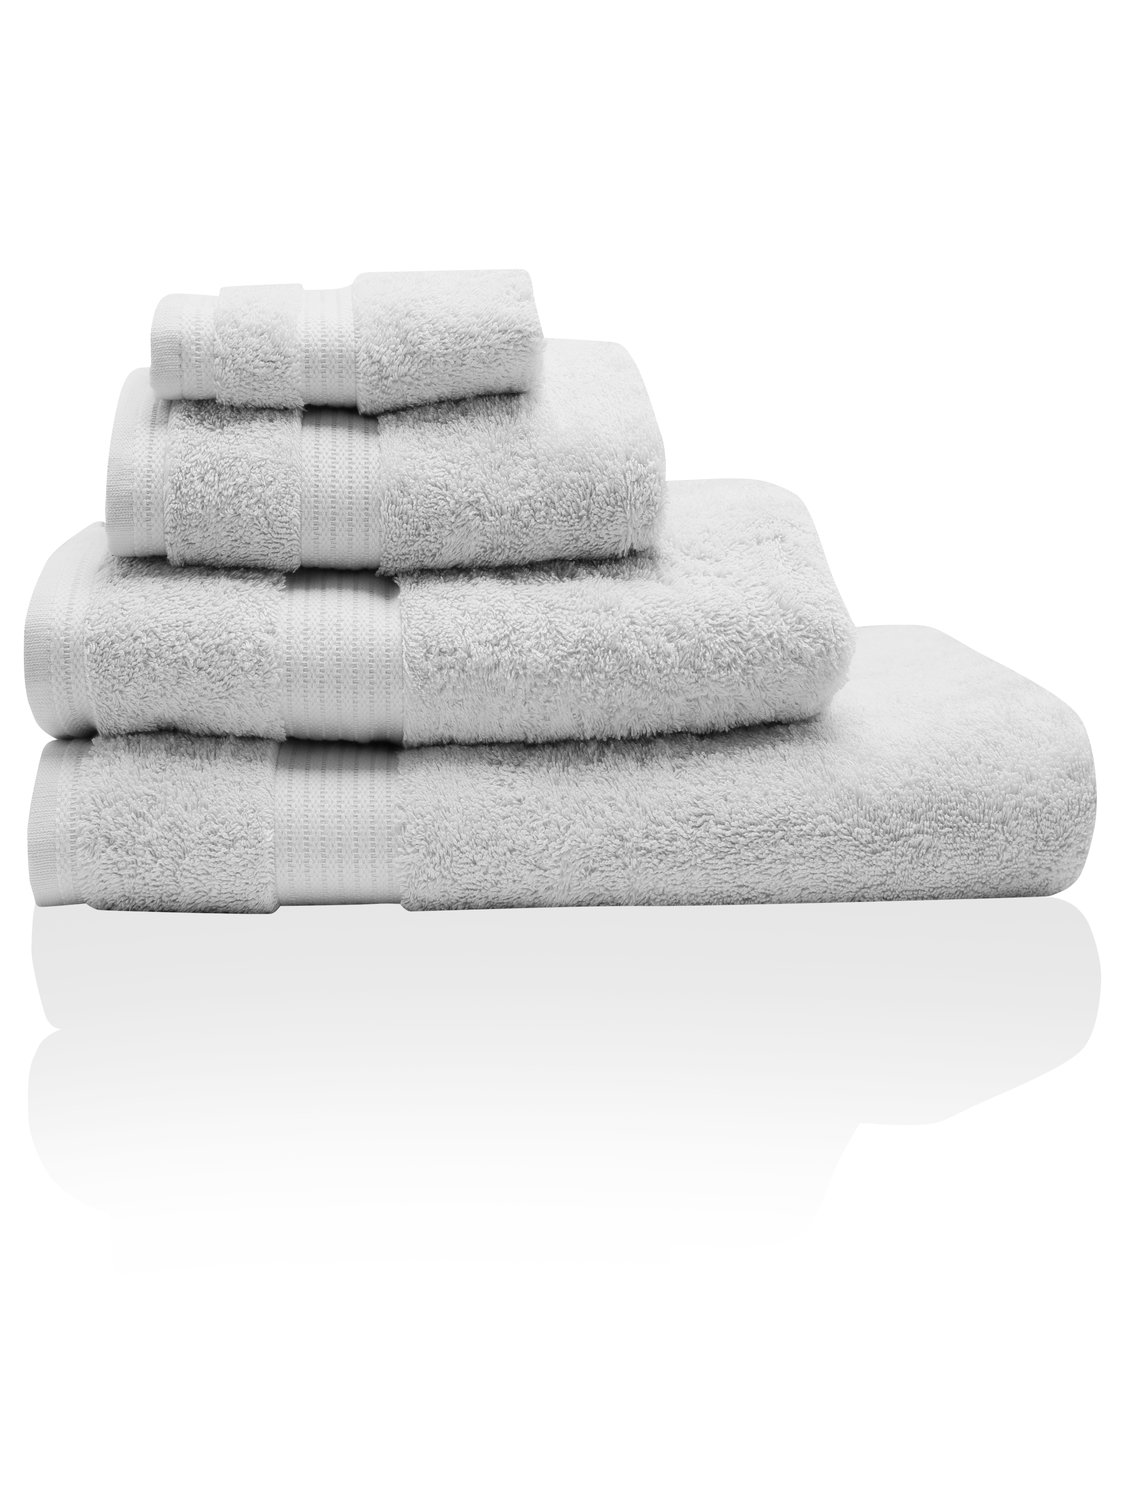 Image of 100% Combed Cotton 580Gsm Luxury Soft And Absorbent Bath Sheet - Silver